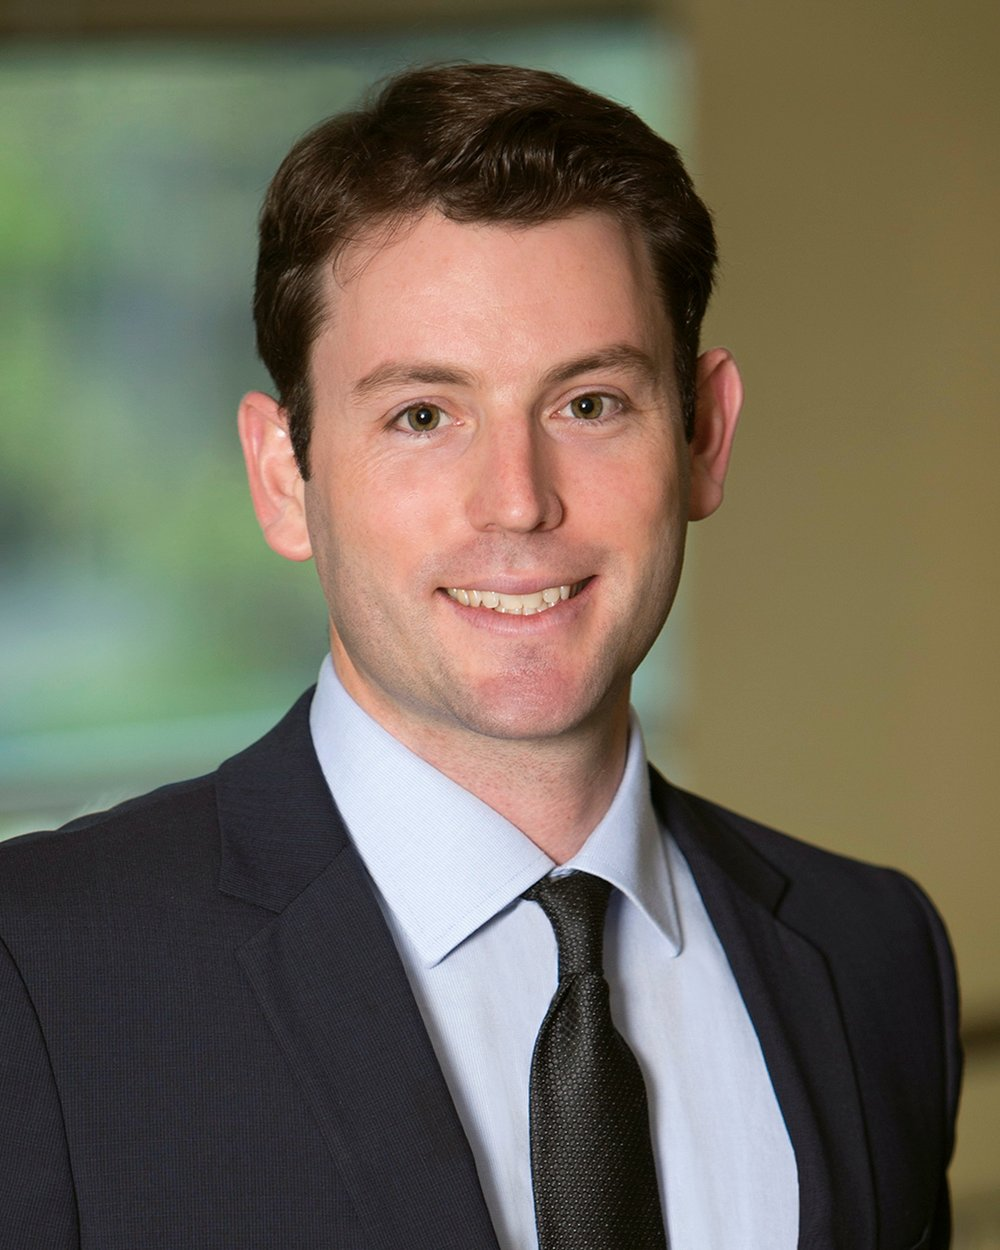 Greg Levin   Director, Social Impact,  BlackRock  Greg is a Director on the Social Impact team at BlackRock, focusing on strategy development. Greg has led the development and launch of BlackRock's Emergency Savings Initiative. Prior to joining BlackRock in 2015, Greg served as Chief of Staff to the President of The Robin Hood Foundation, supporting the organization's work with its Board of Directors as well as its internal operations. Prior to Robin Hood, Greg held diverse international management roles working on small and large scale projects.